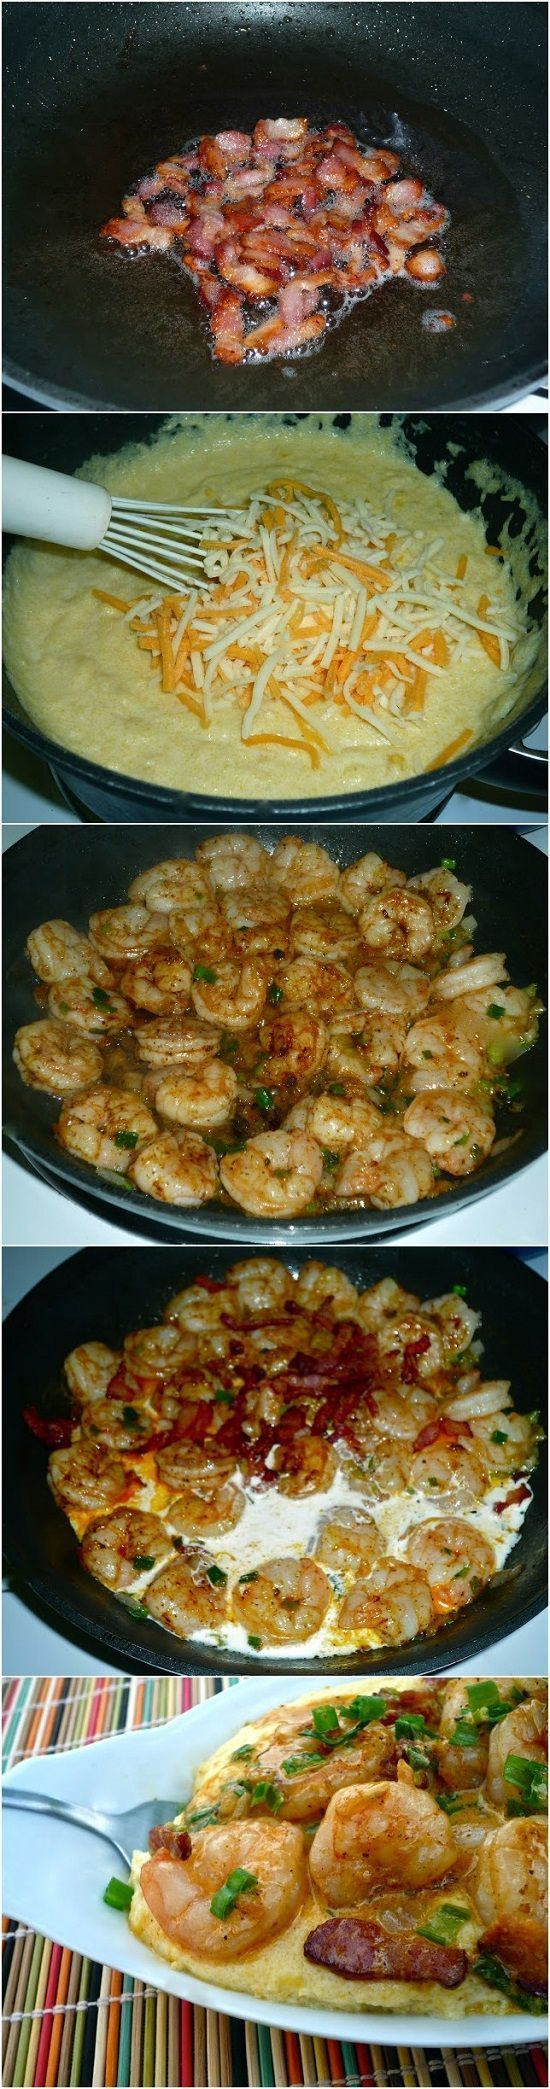 Cheesy Shrimp and Grits... I'm not a huge grits fan but this has bacon, shrimp and cheese, it must taste good!